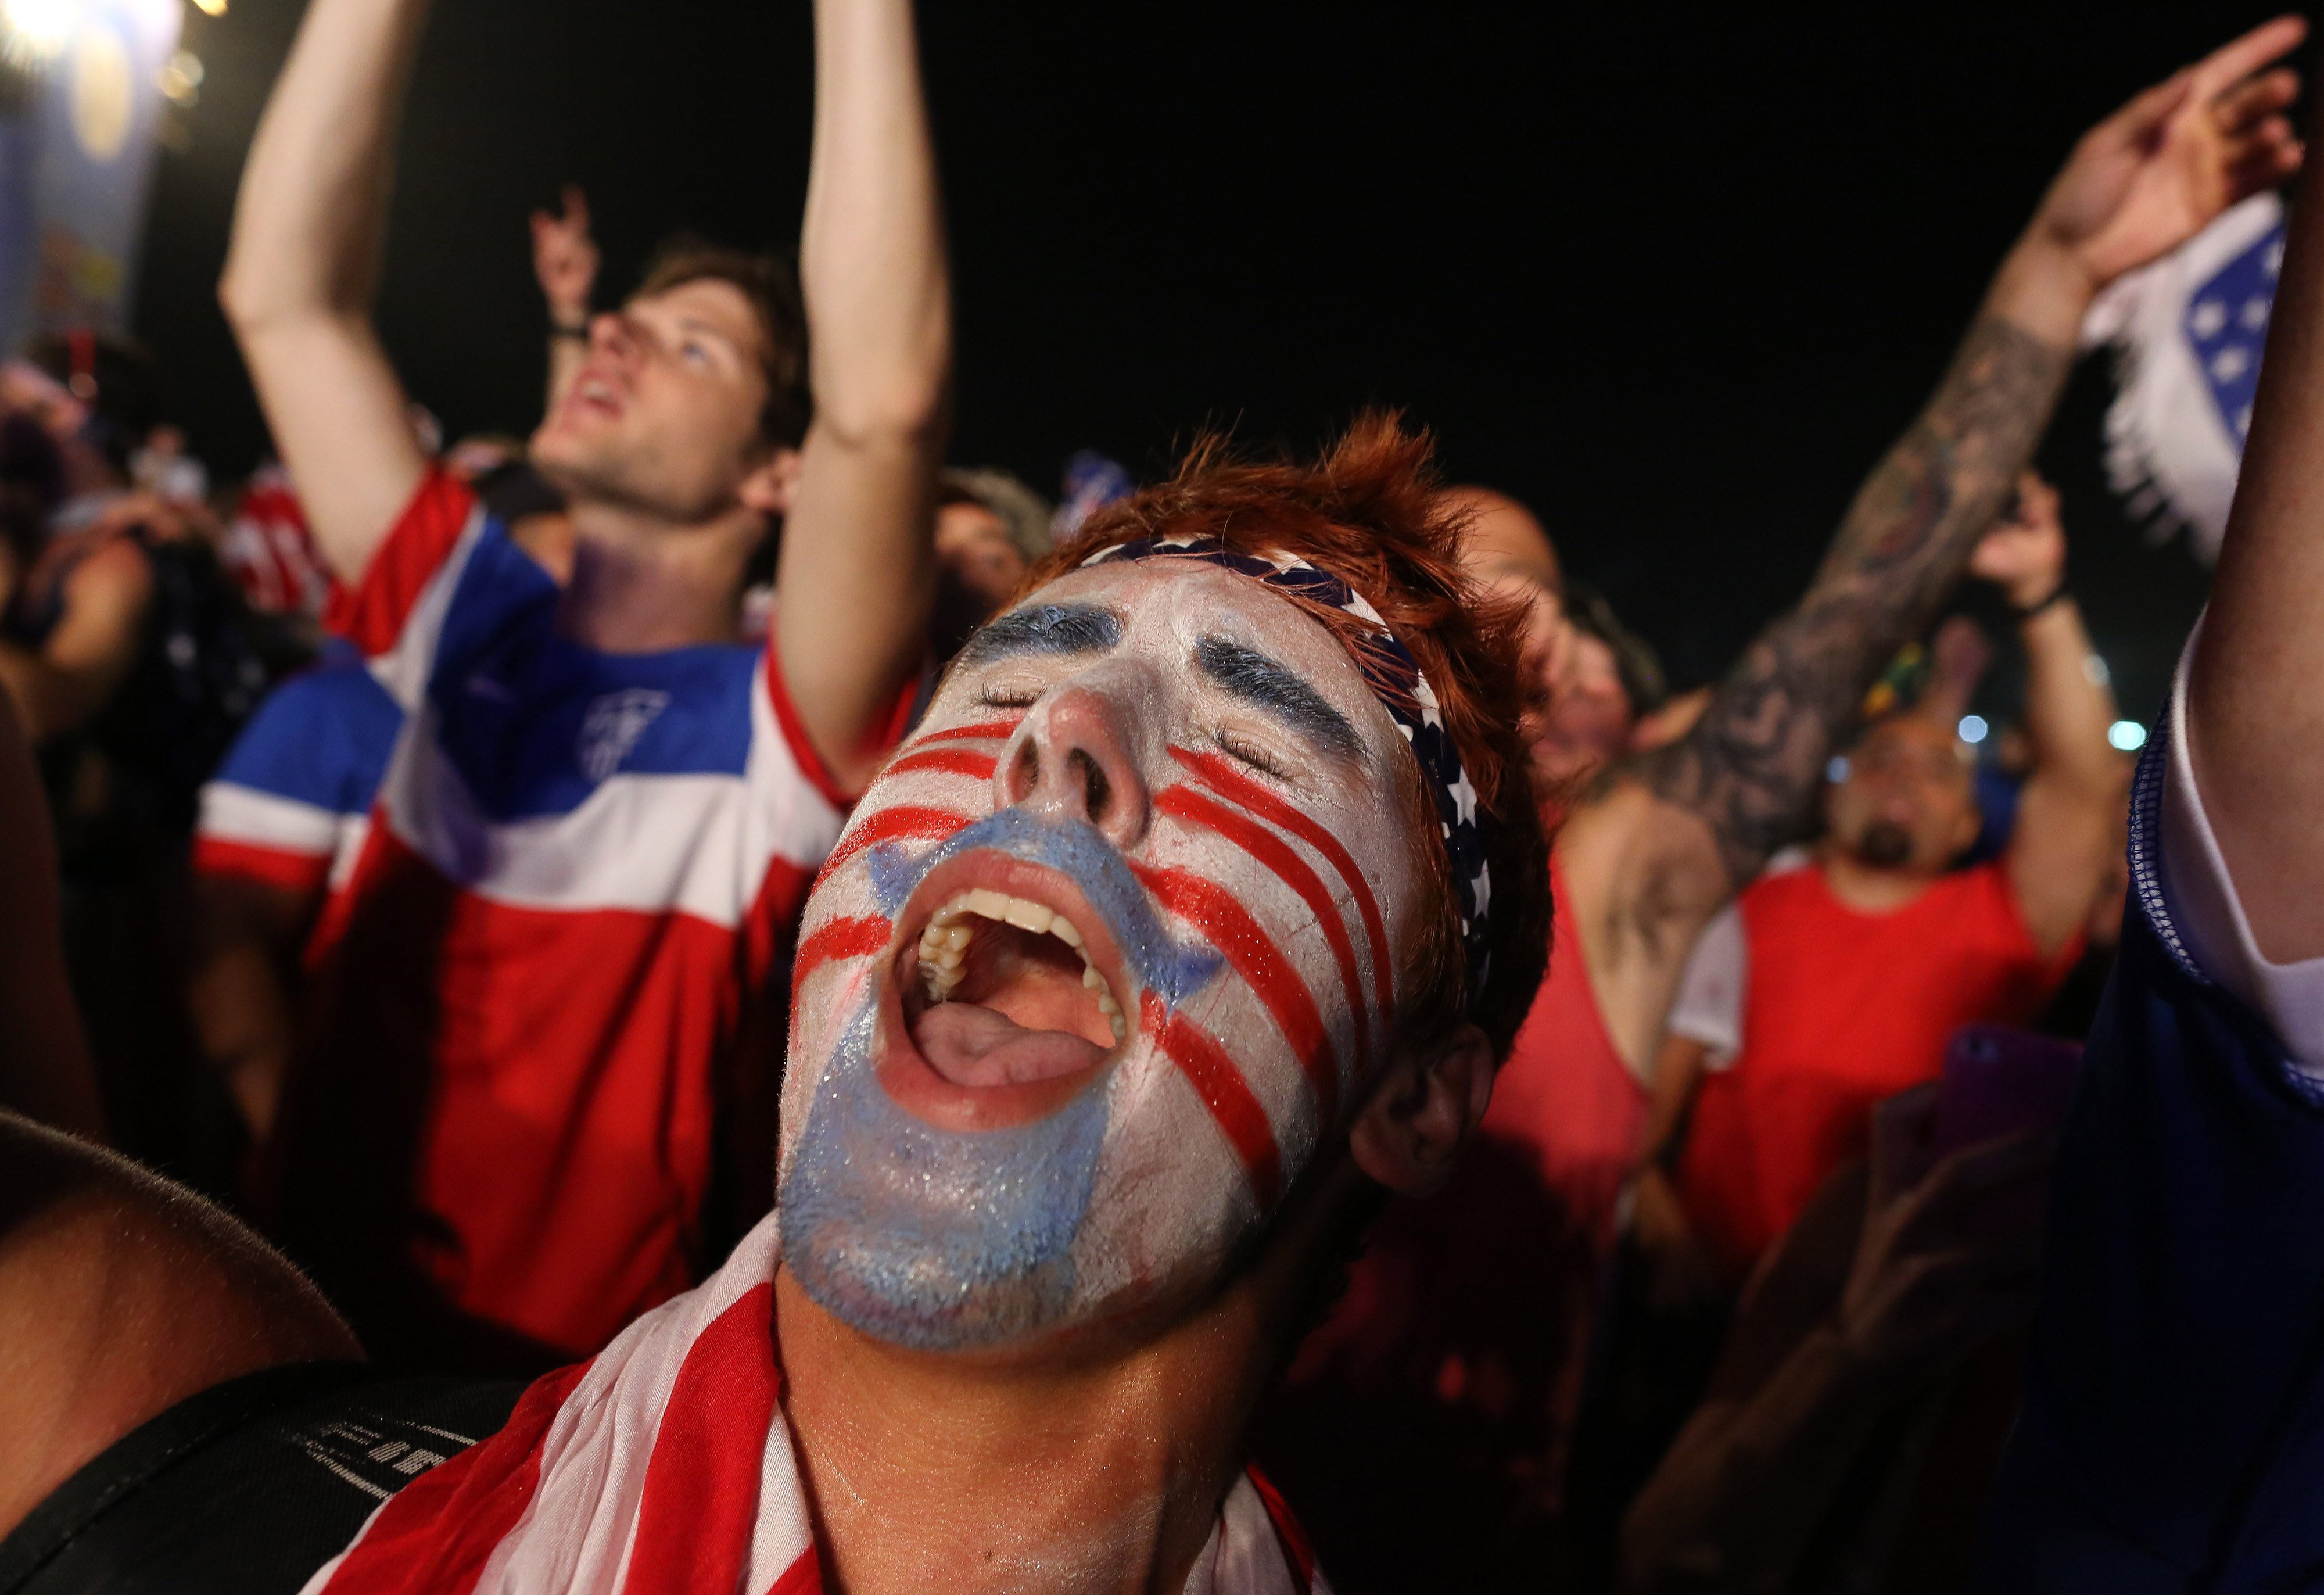 A fan of the U.S. national soccer team celebrates his team's victory during a live broadcast of the soccer World Cup match between the Unites States and Ghana, inside the FIFA Fan Fest area on Copacabana beach, Rio de Janeiro on June 16, 2014.